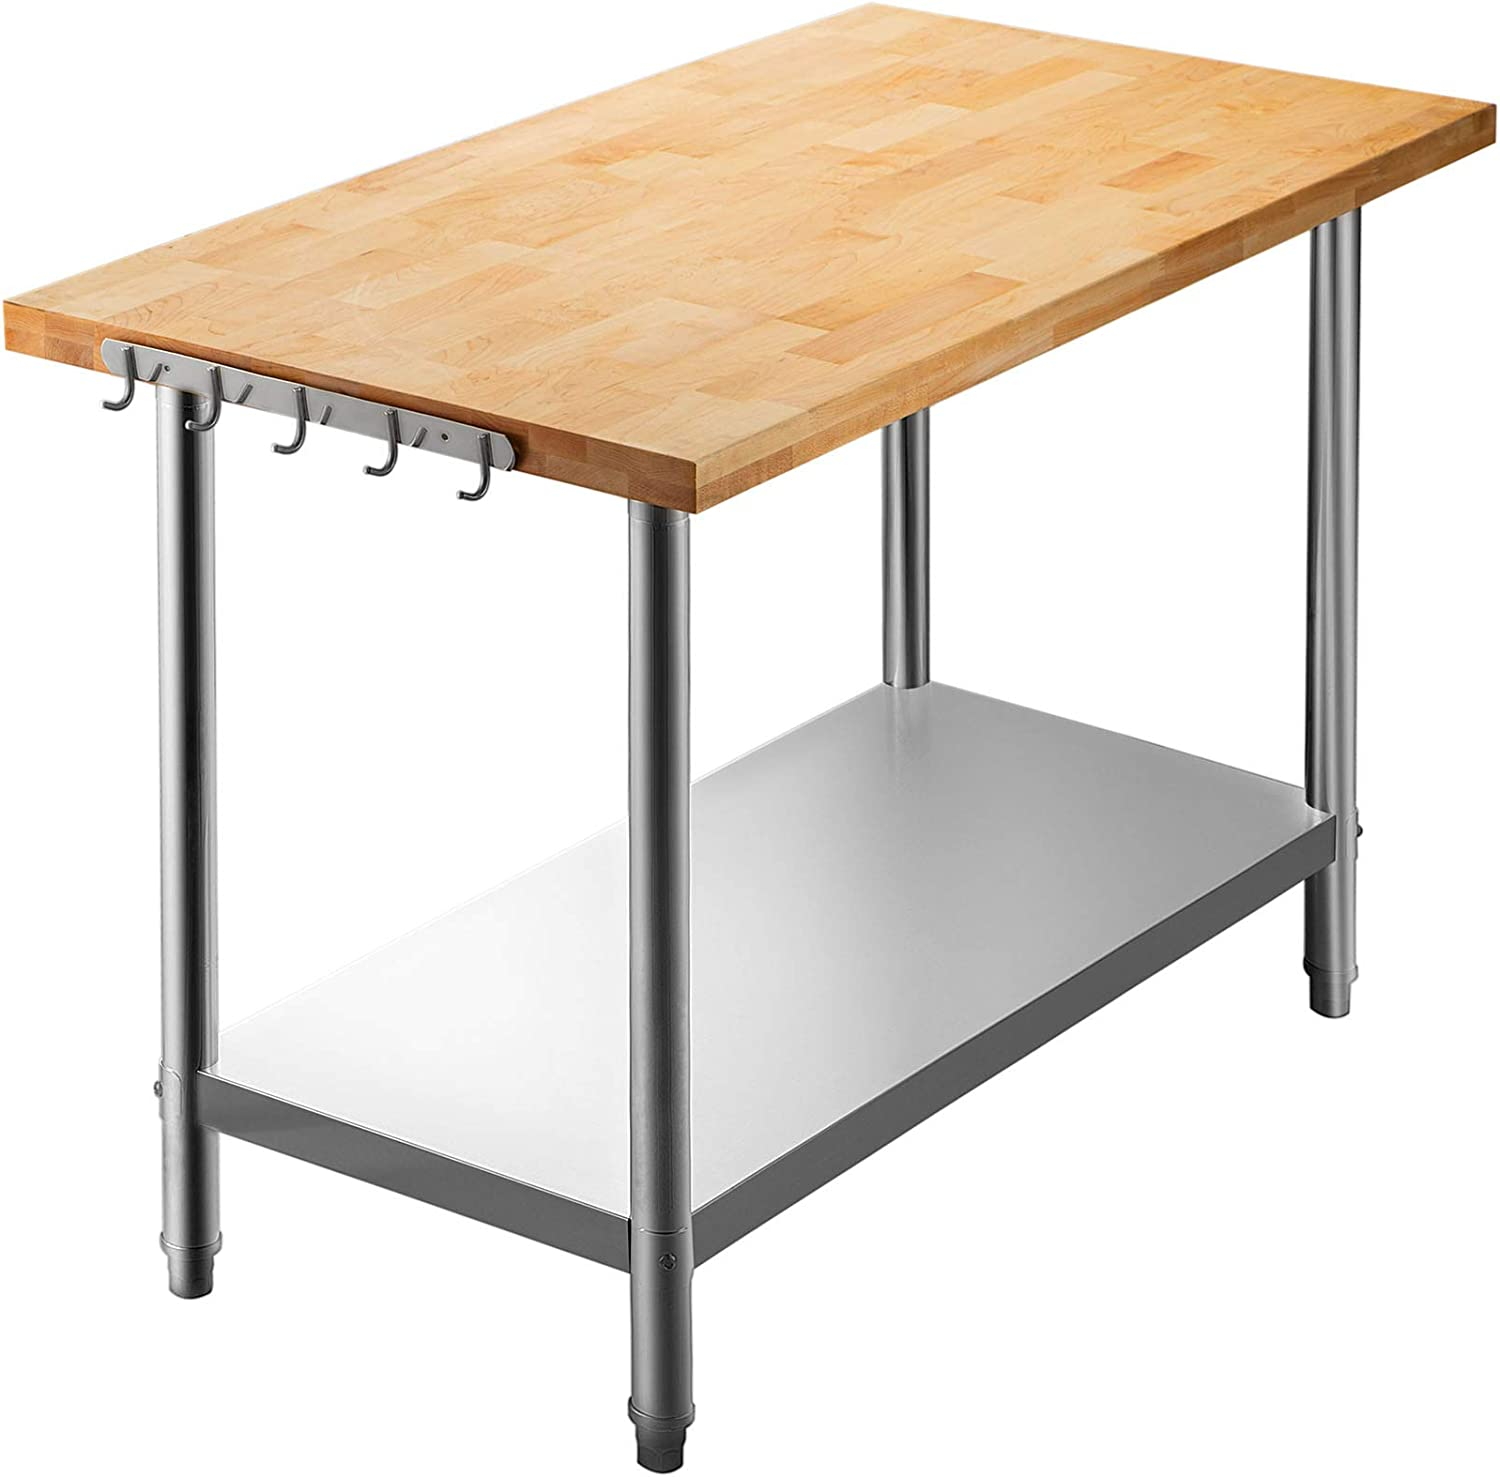 Buy VEVOR Maple Top Work Table, 9 x 9 Inches Stainless Steel ...